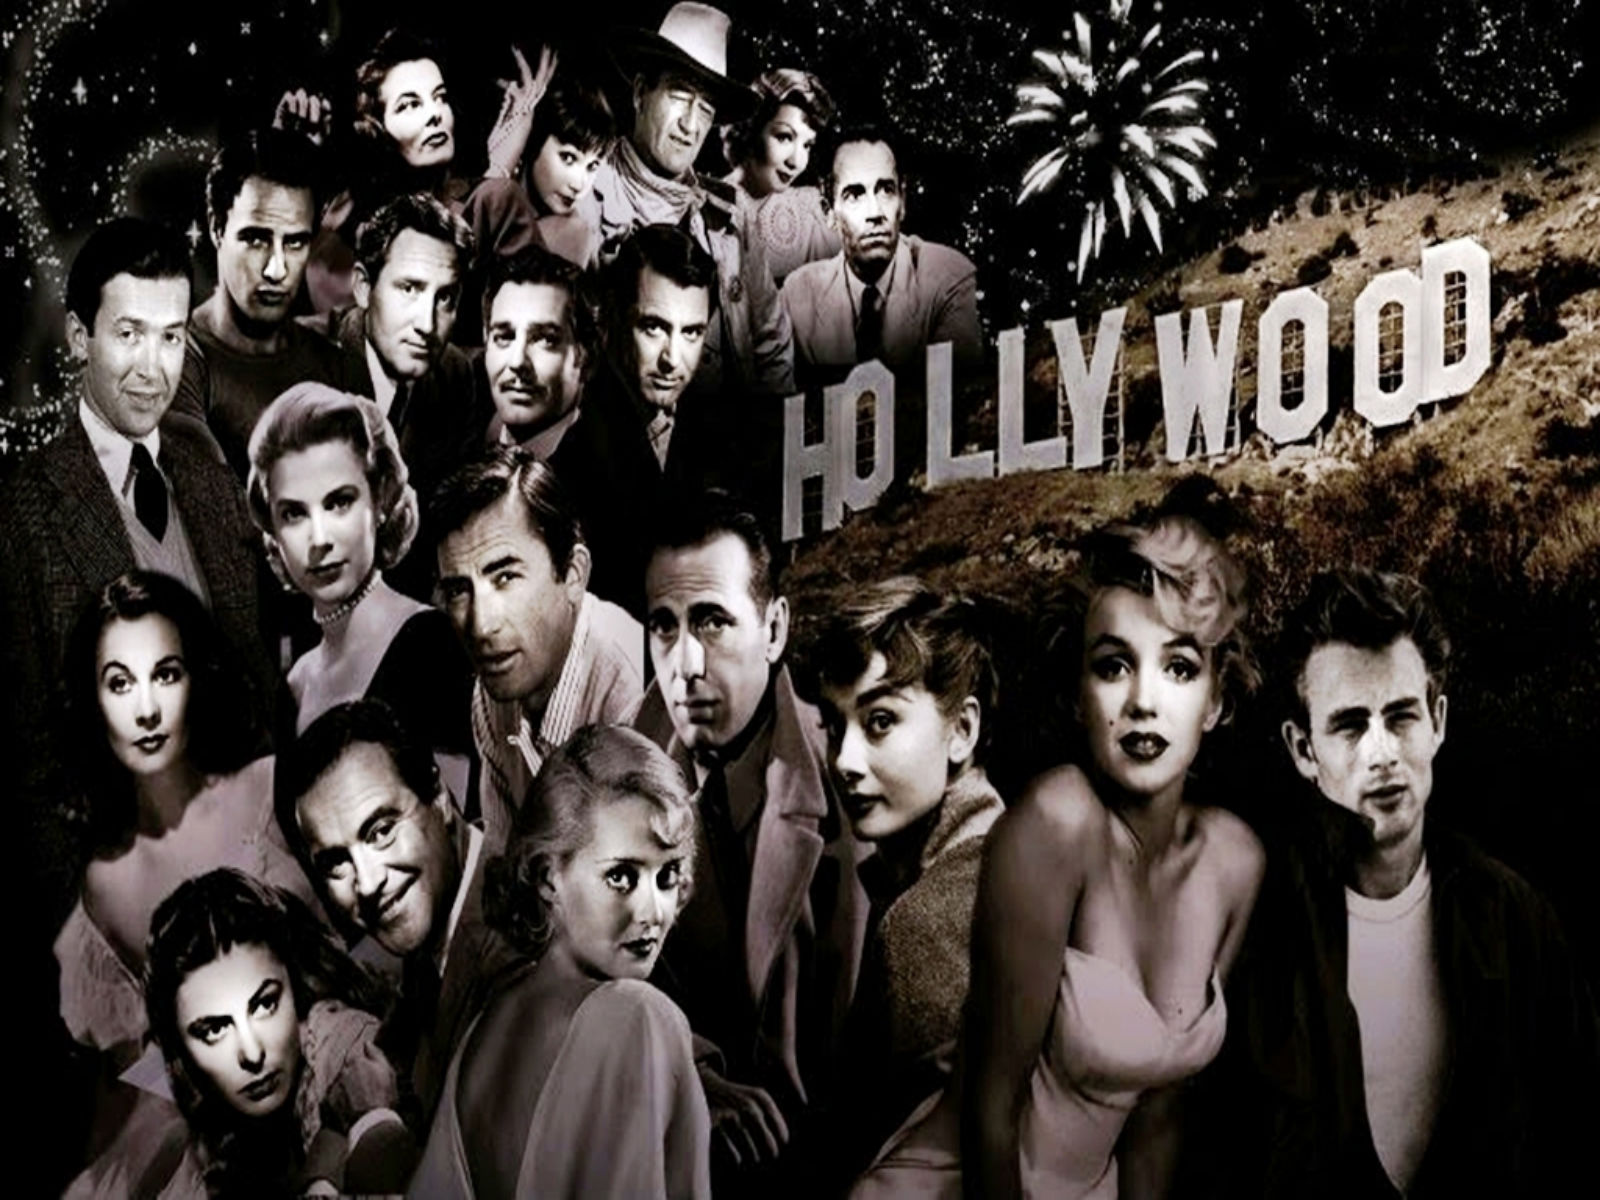 a review of a classic hollywood film